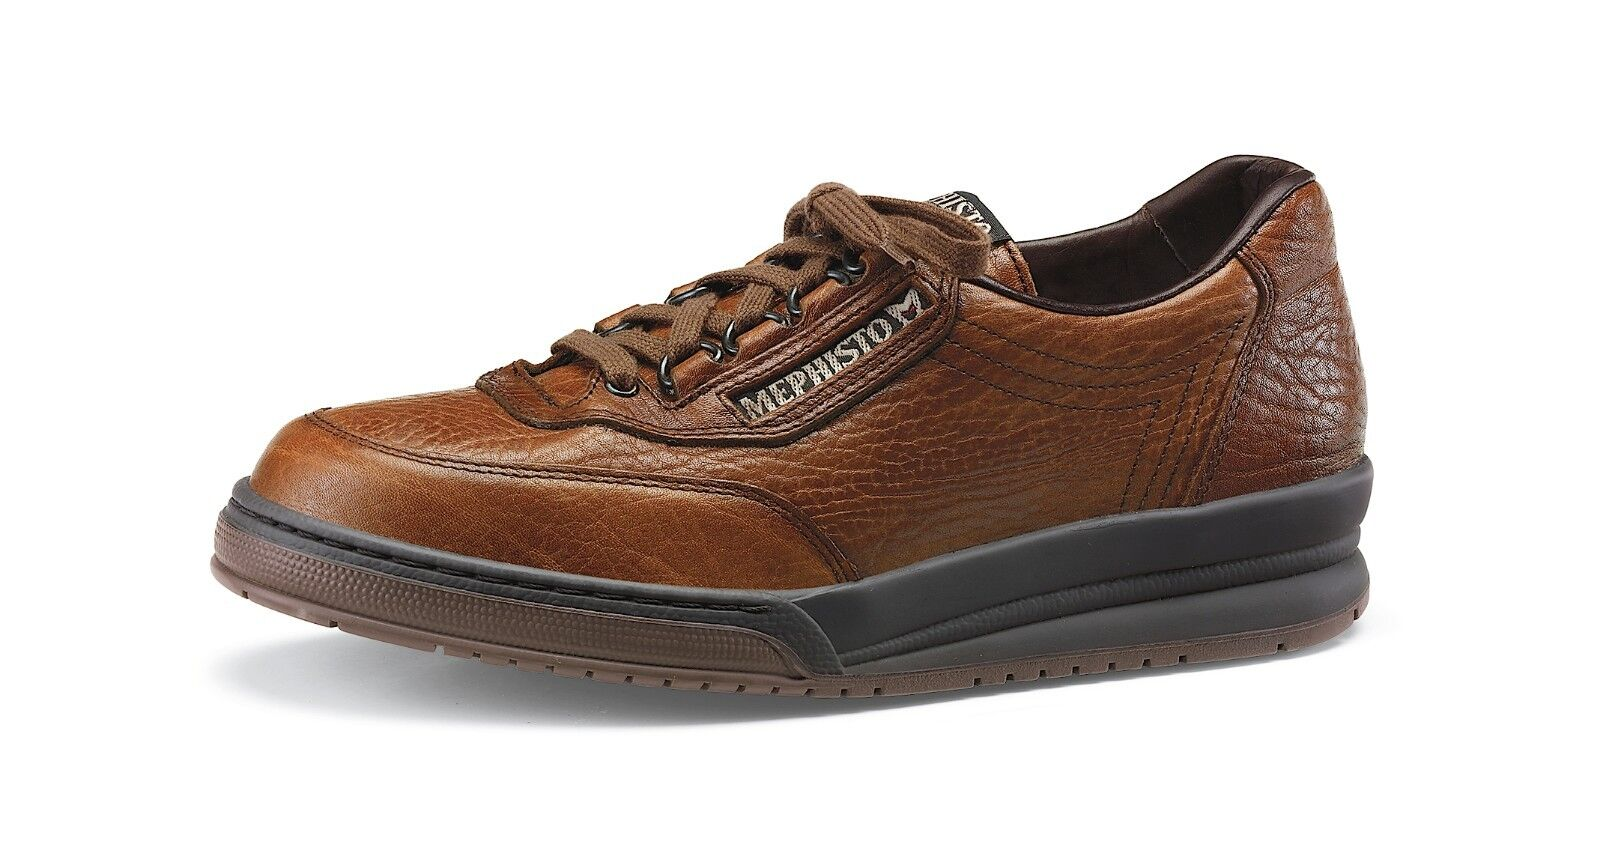 MEPHISTO MEN'S MATCH WALKING COMFORT LACE SHOE, ARCH SUPPORT